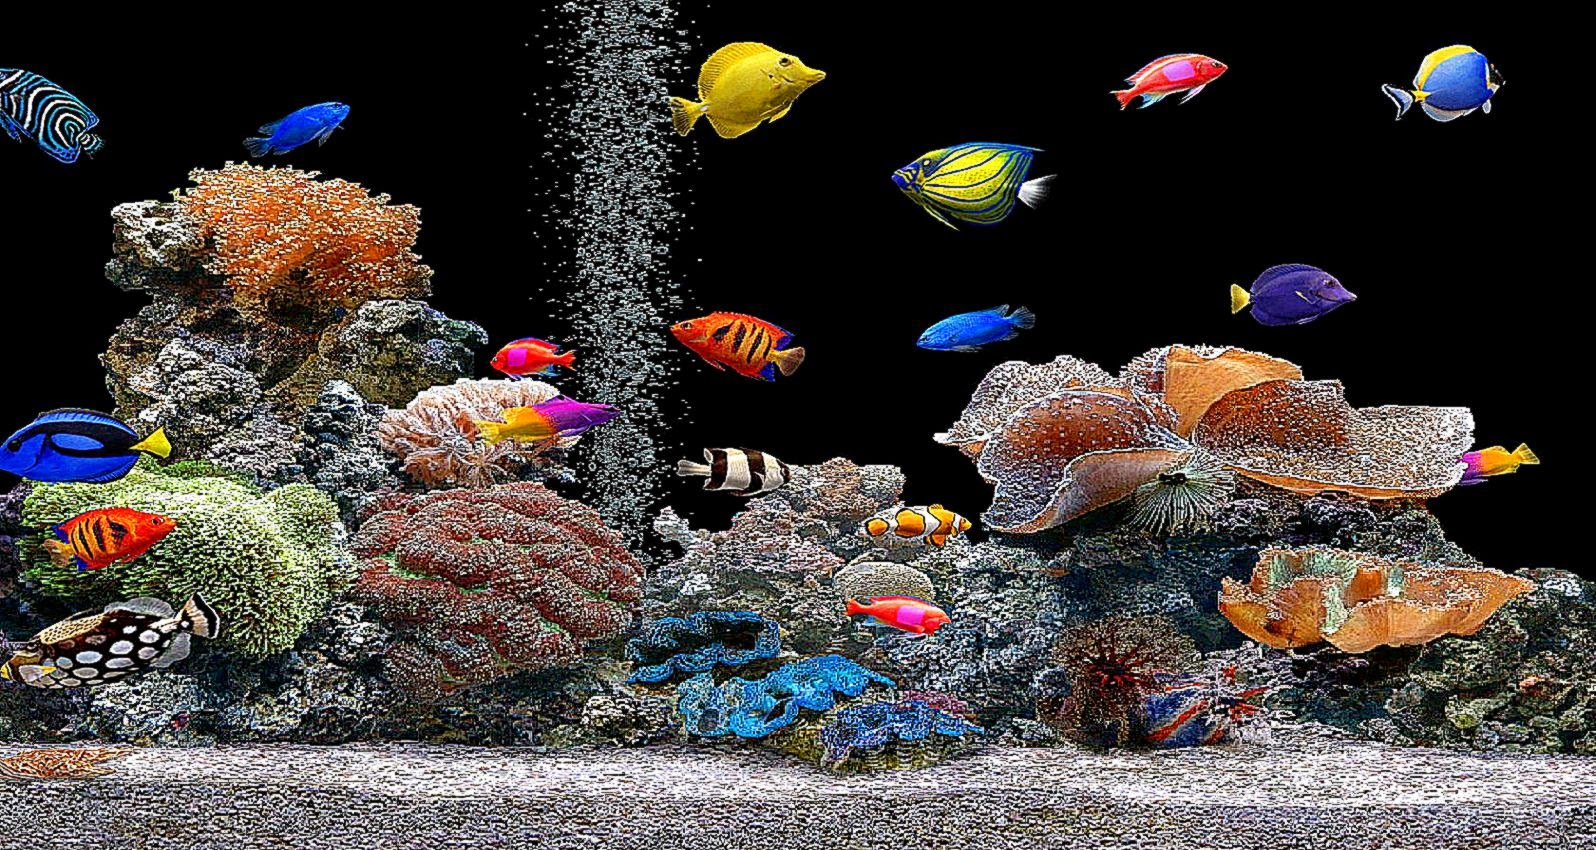 Fish Aquarium Screensaver Wallpaper